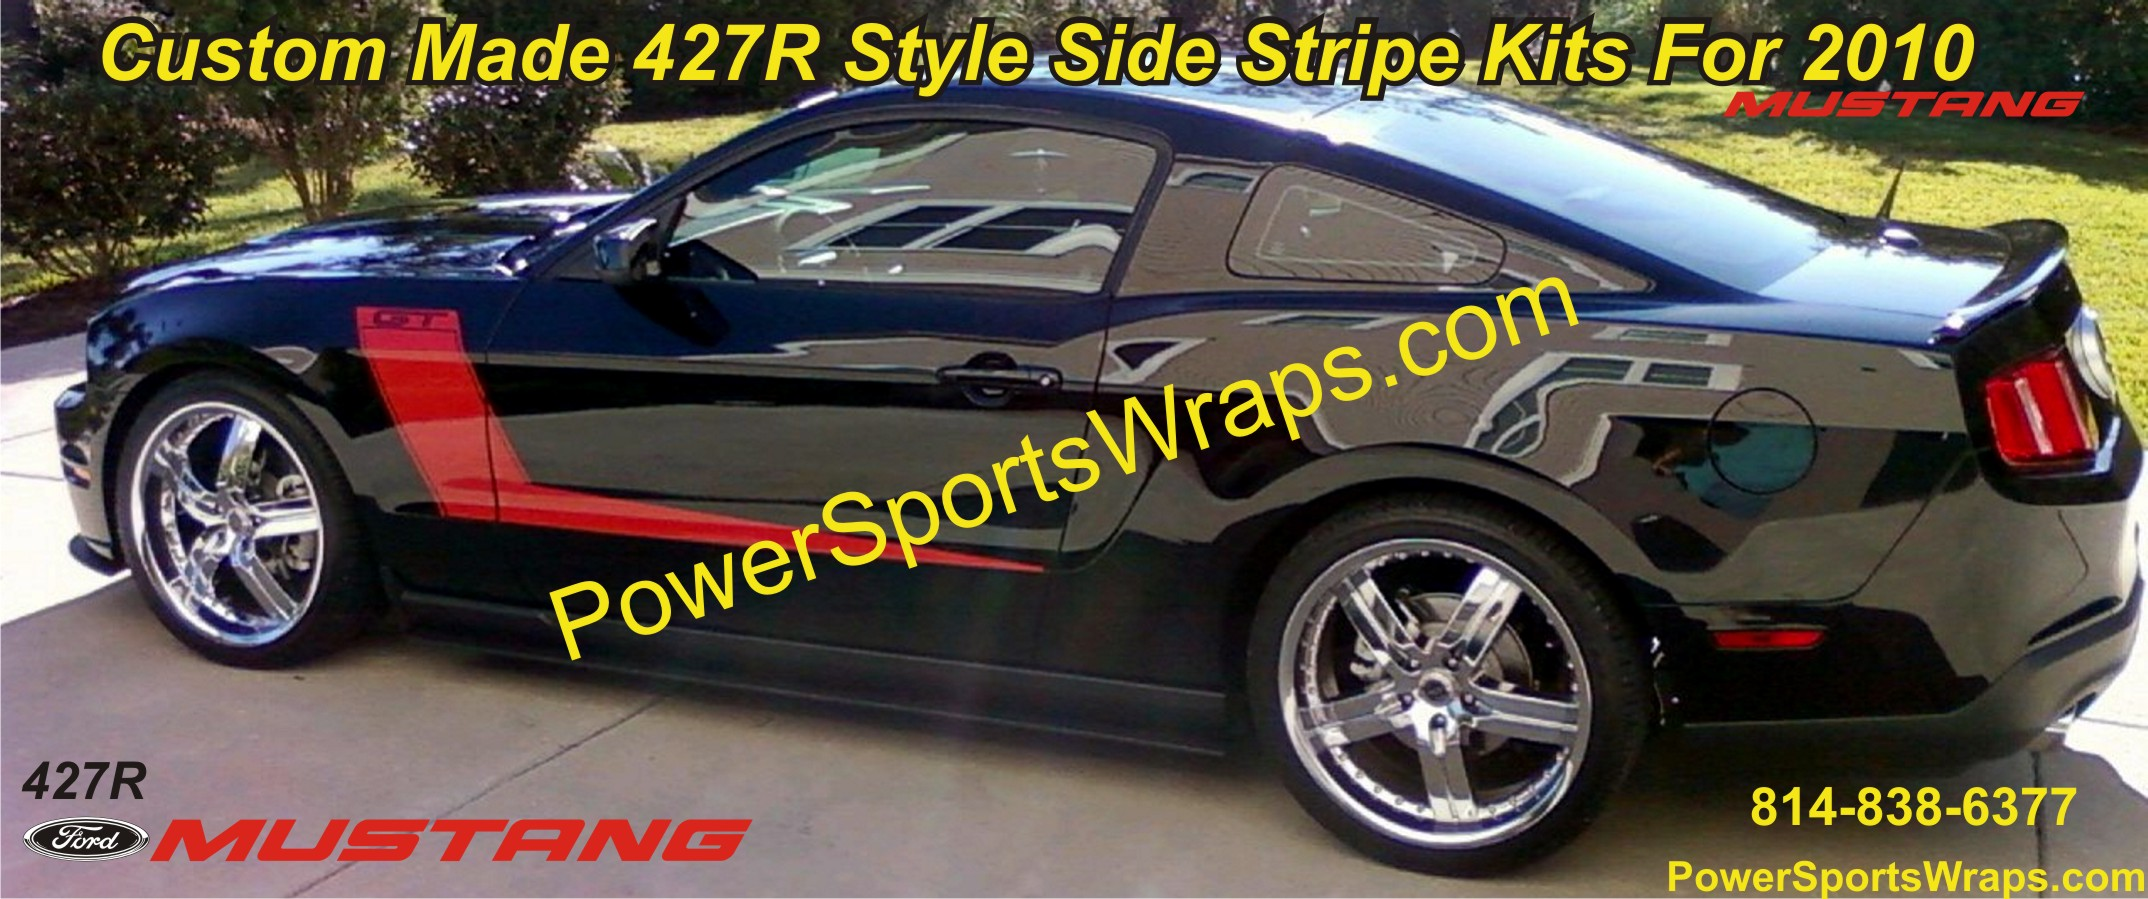 Mustang Stripes Archives Powersportswraps Com